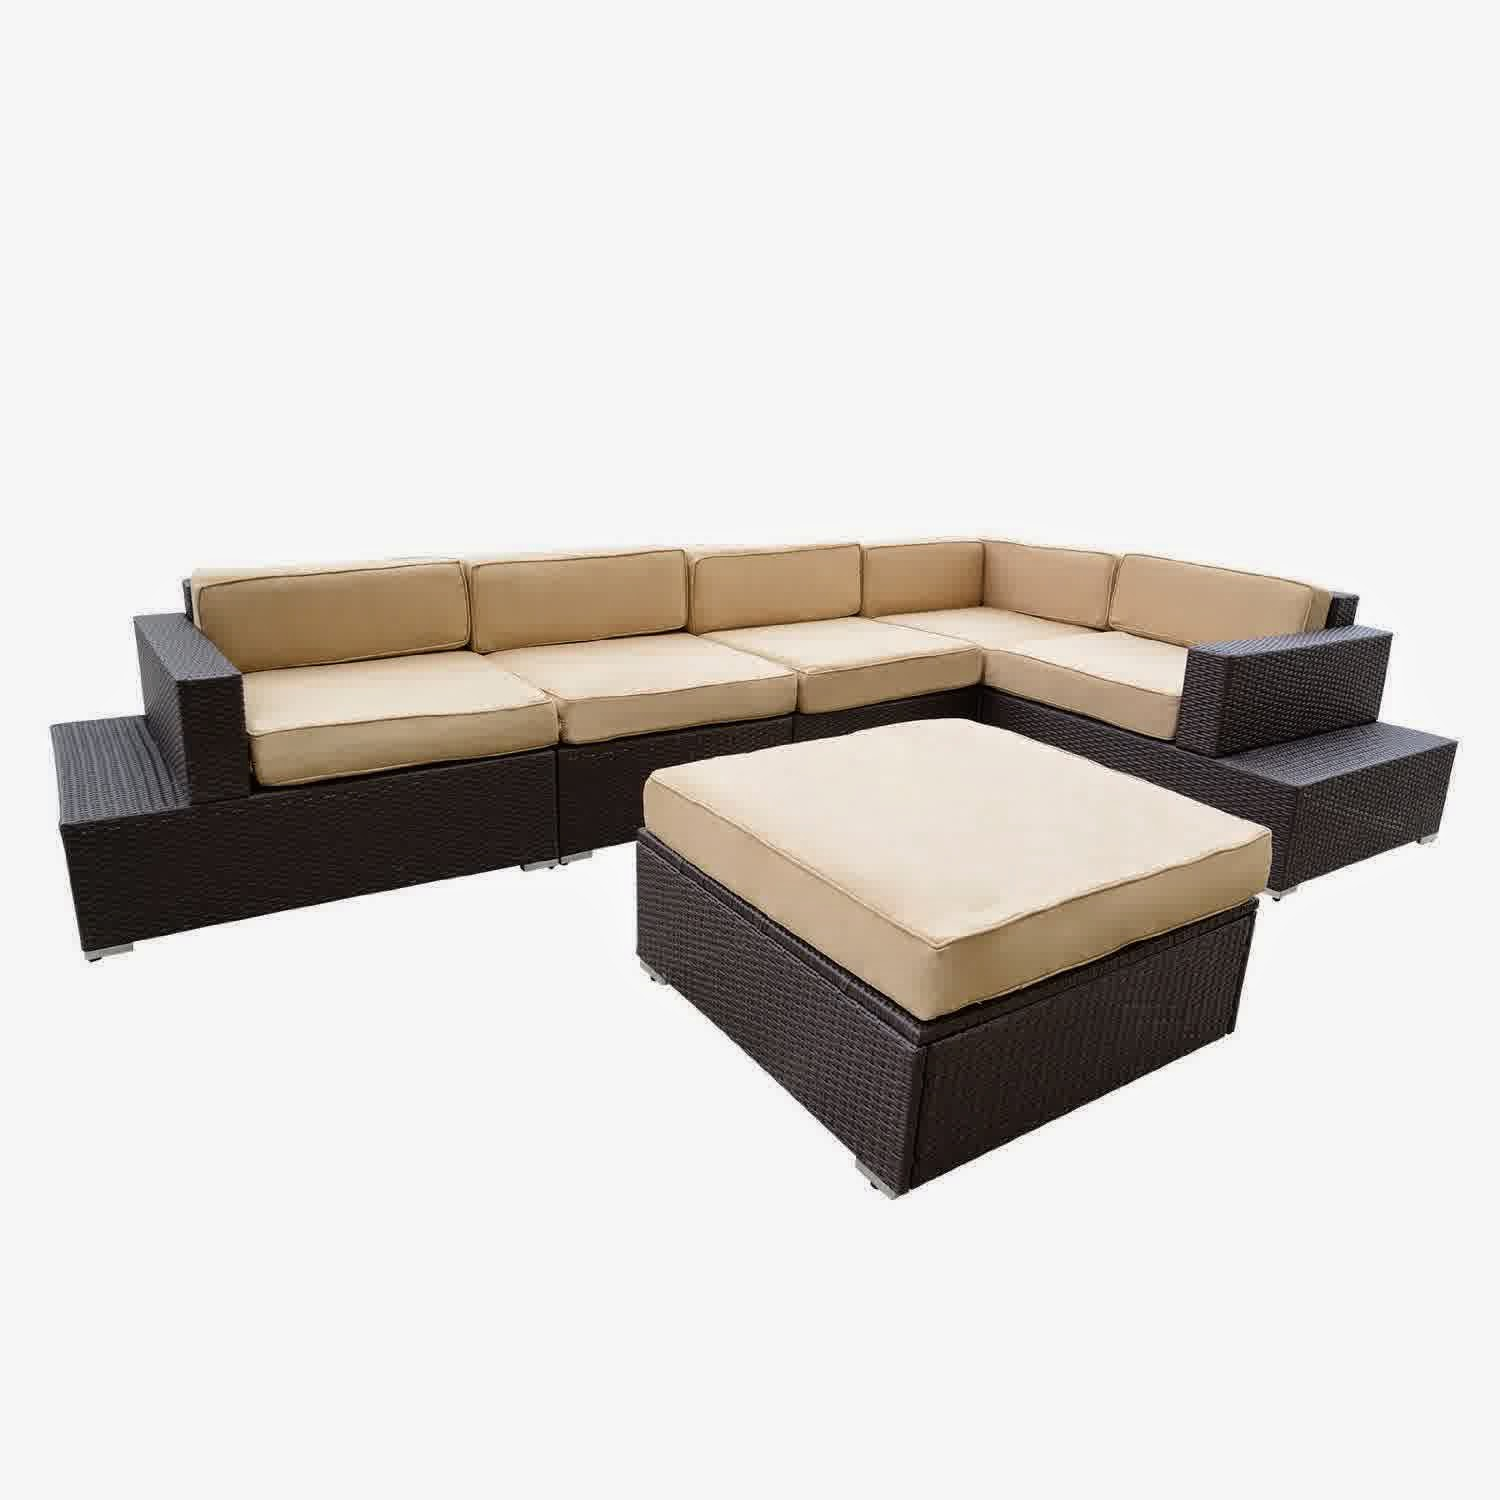 Outdoor Rattan Wicker Sofa Sectional Patio Furniture Set Kids Sofas Big Sale Discount 50